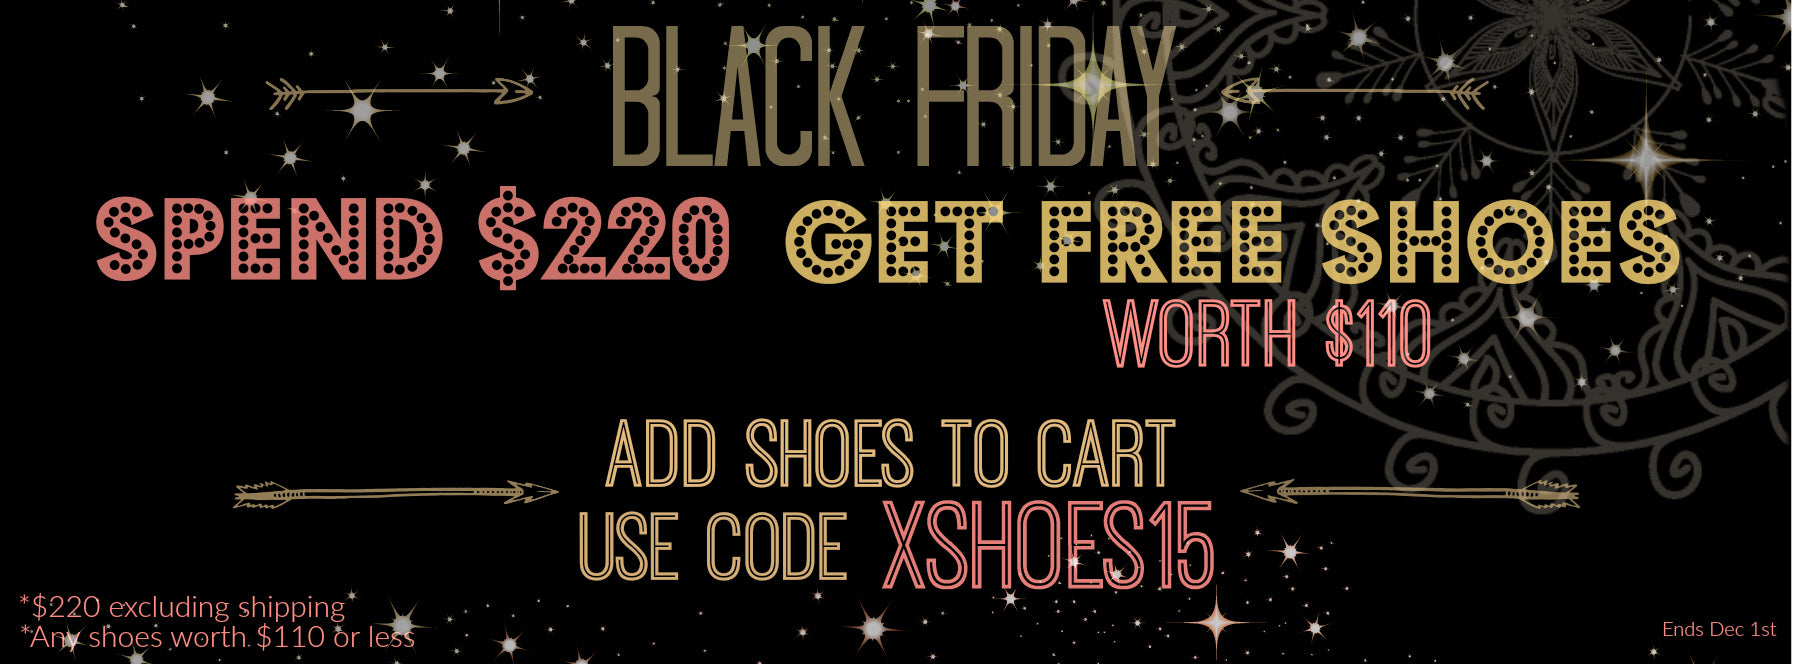 Black Friday special. Free shoes